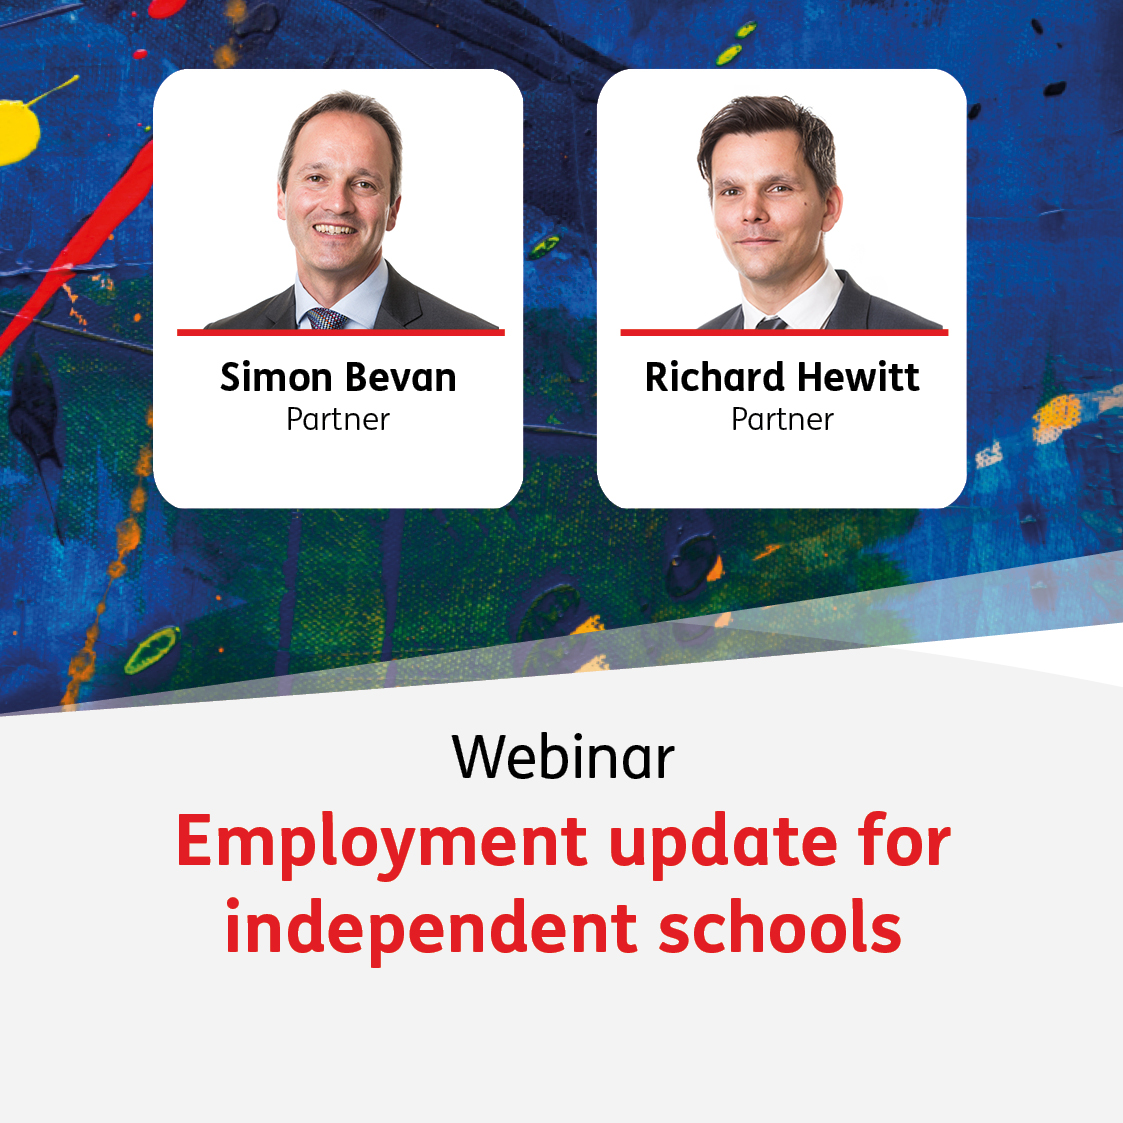 Debt recovery for independent schools - 10 June 2021